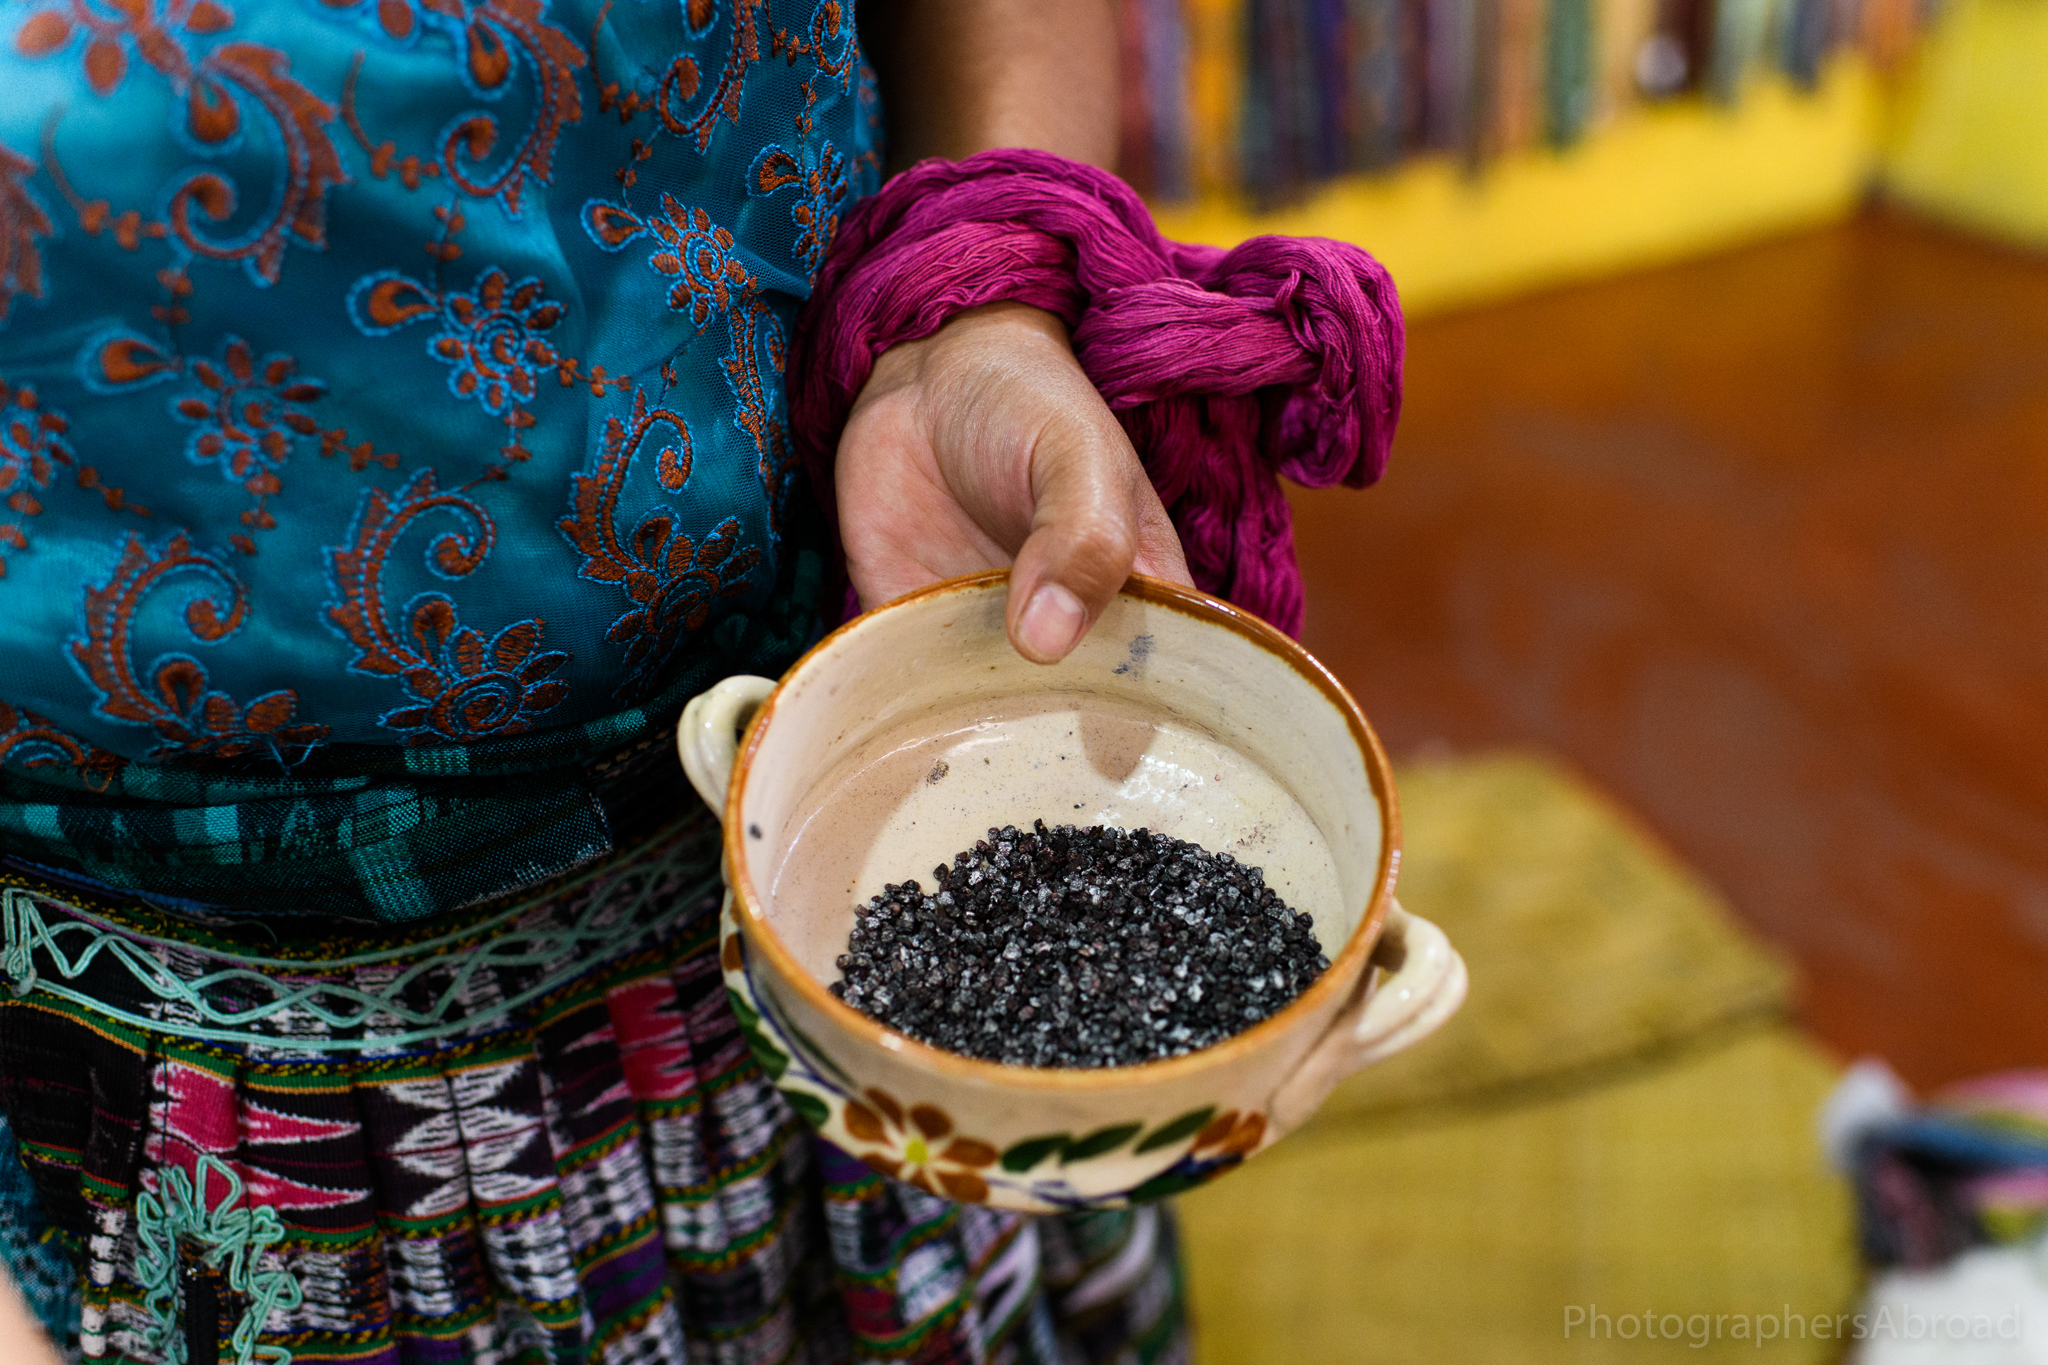 Crushed cochineal bugs produce a vibrant red dye.